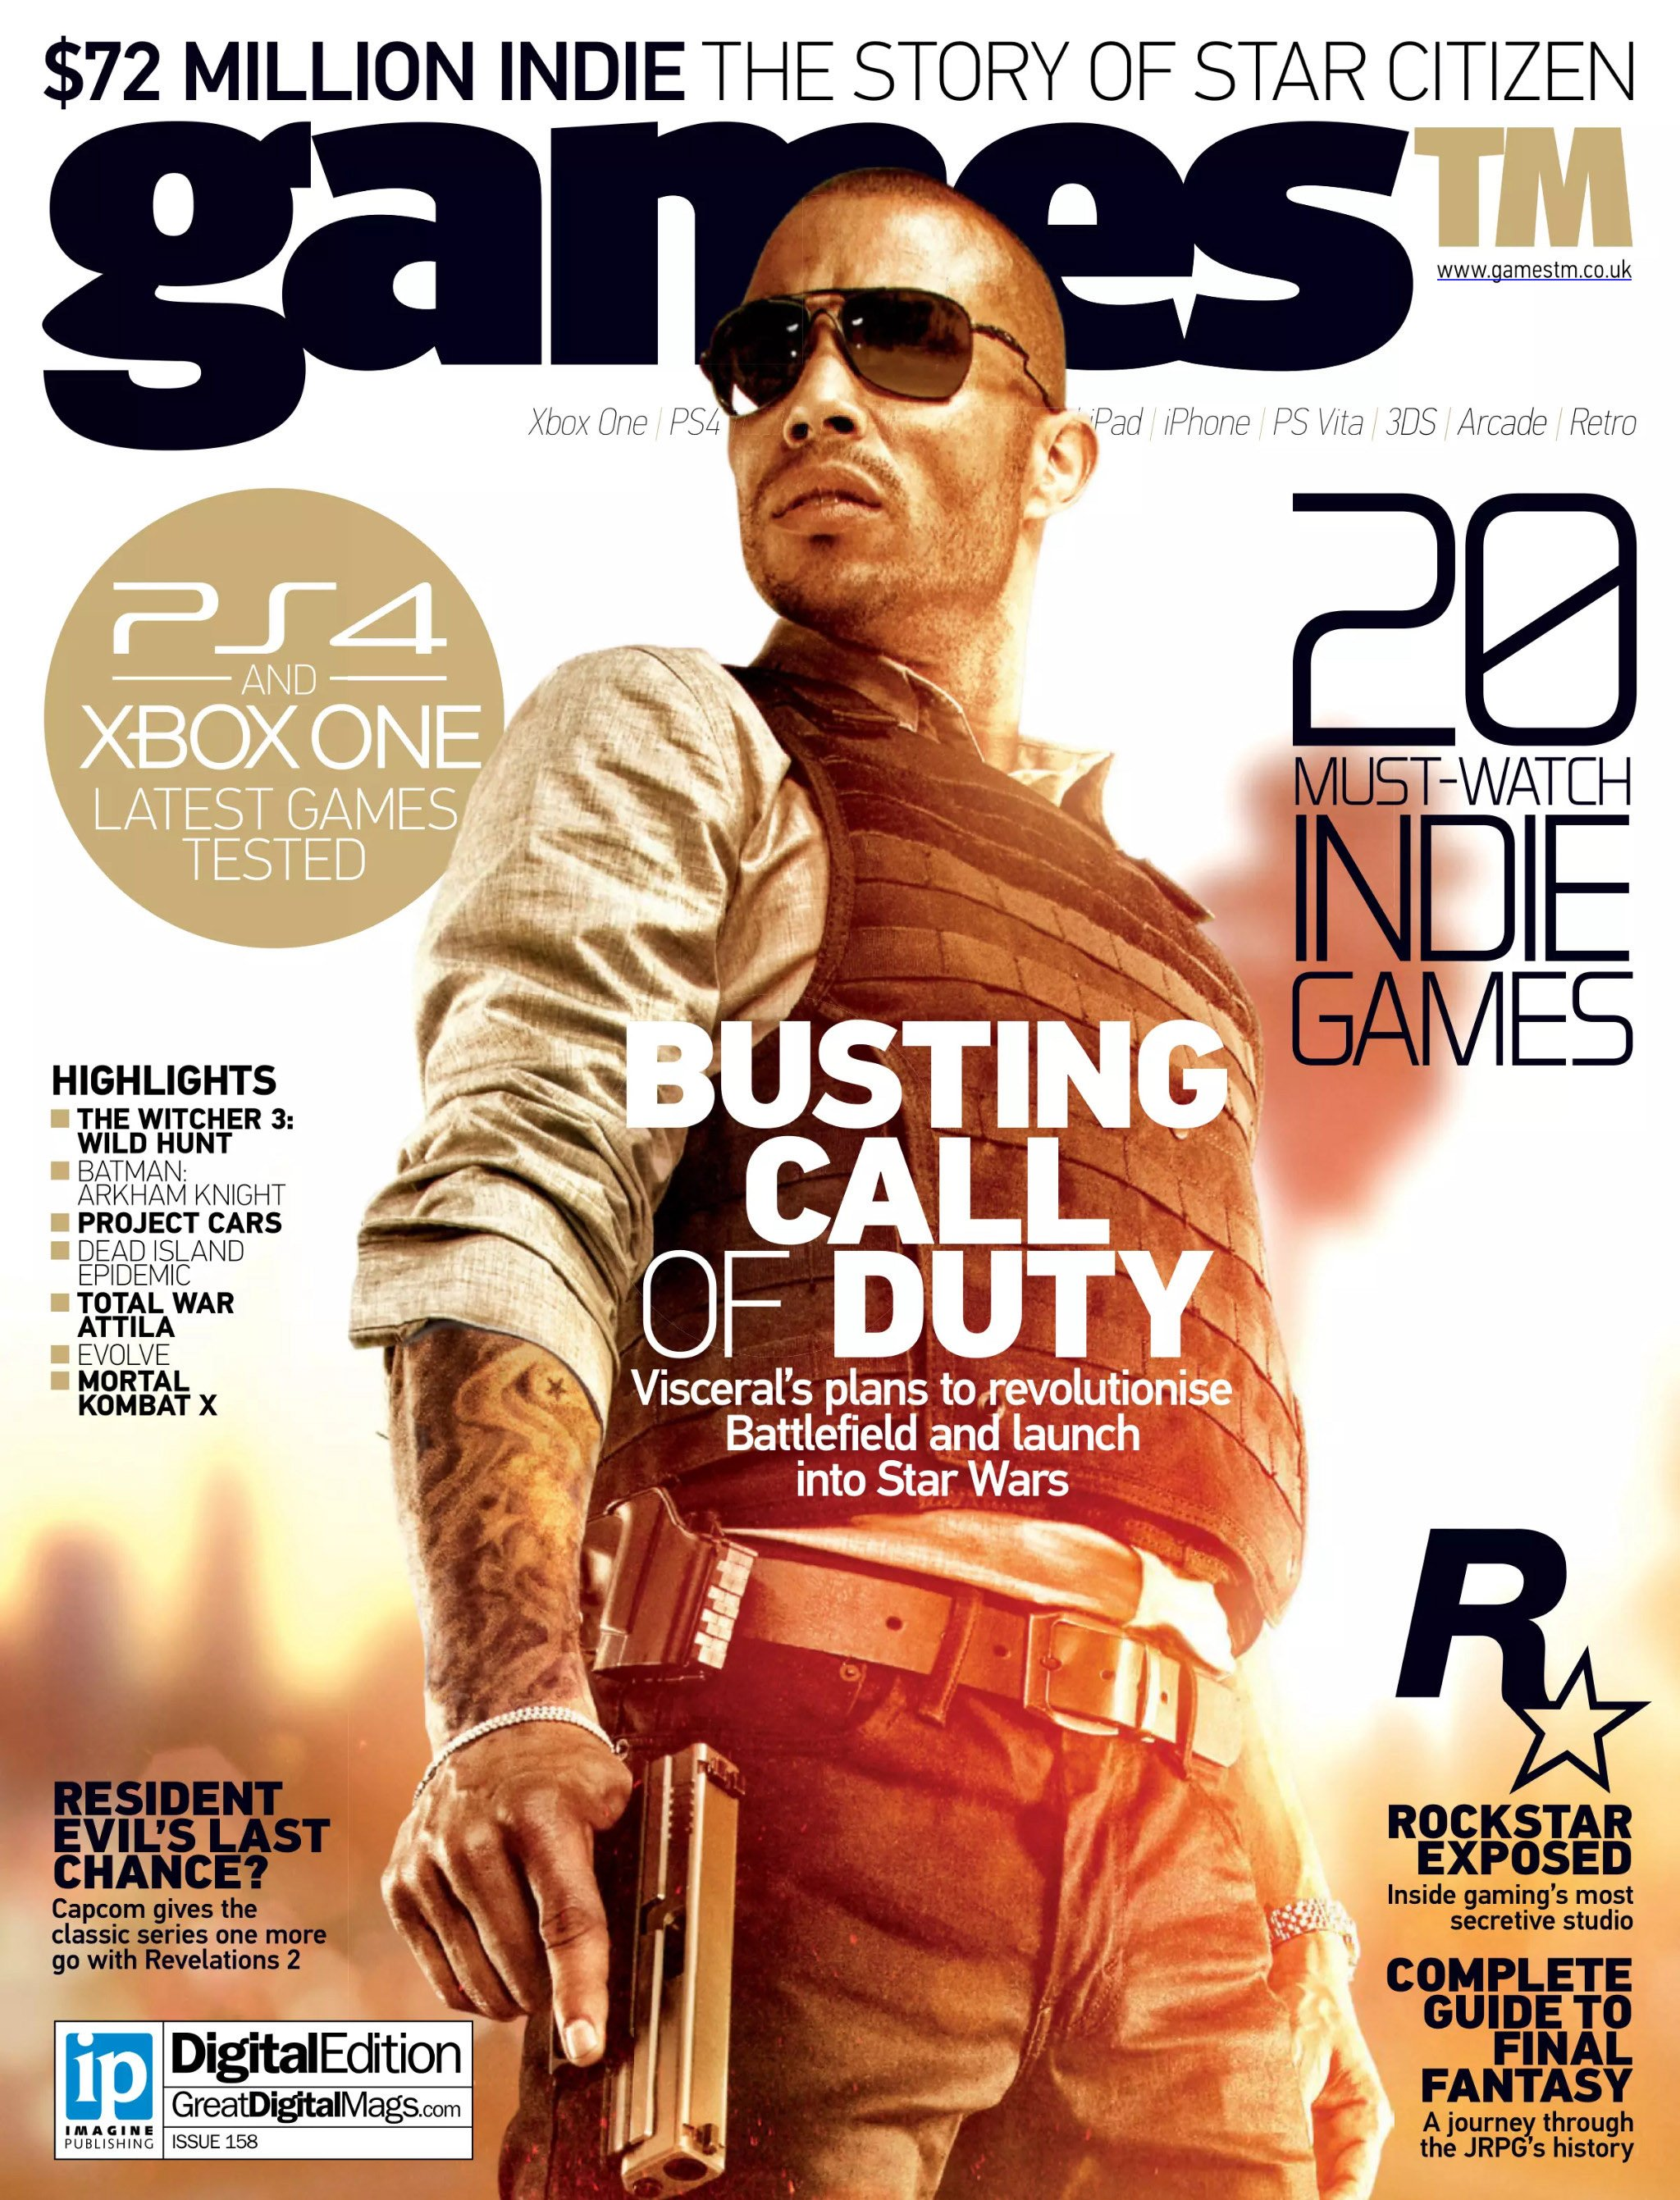 Games TM Issue 158 (February 2015)